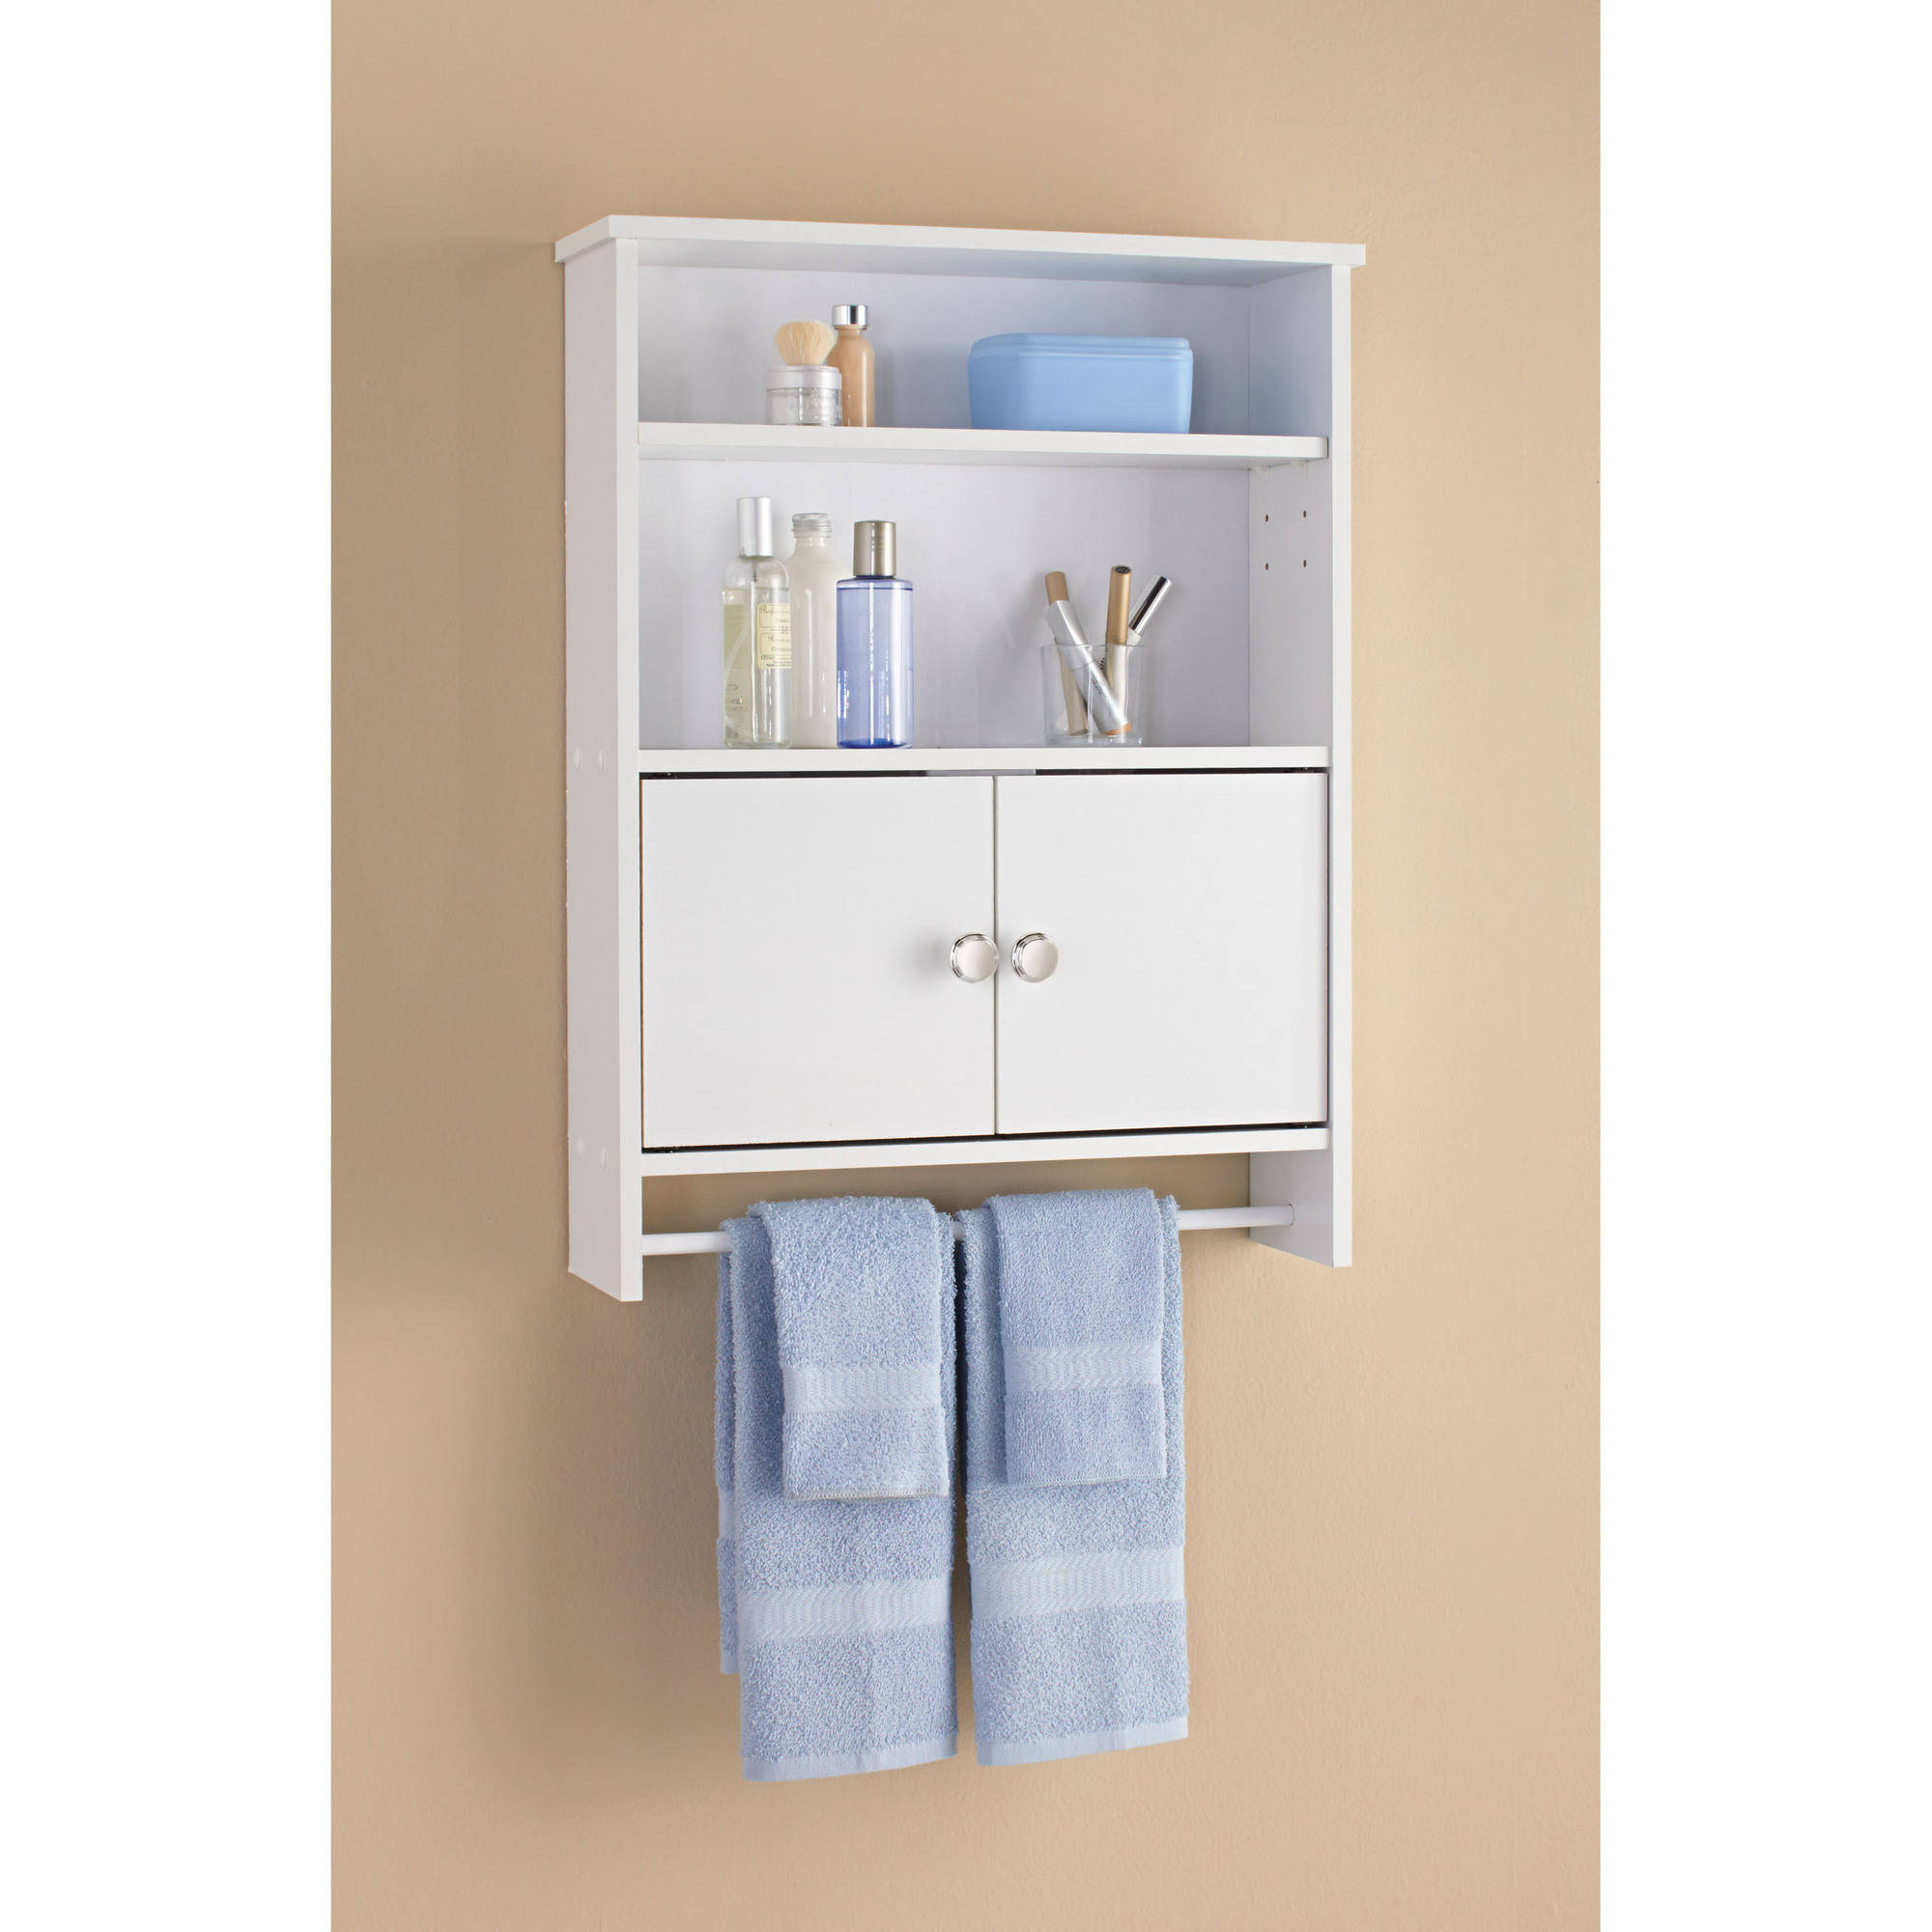 wood wall cabinet bathroom mainstays 2 door bathroom wall cabinet white walmart 21712